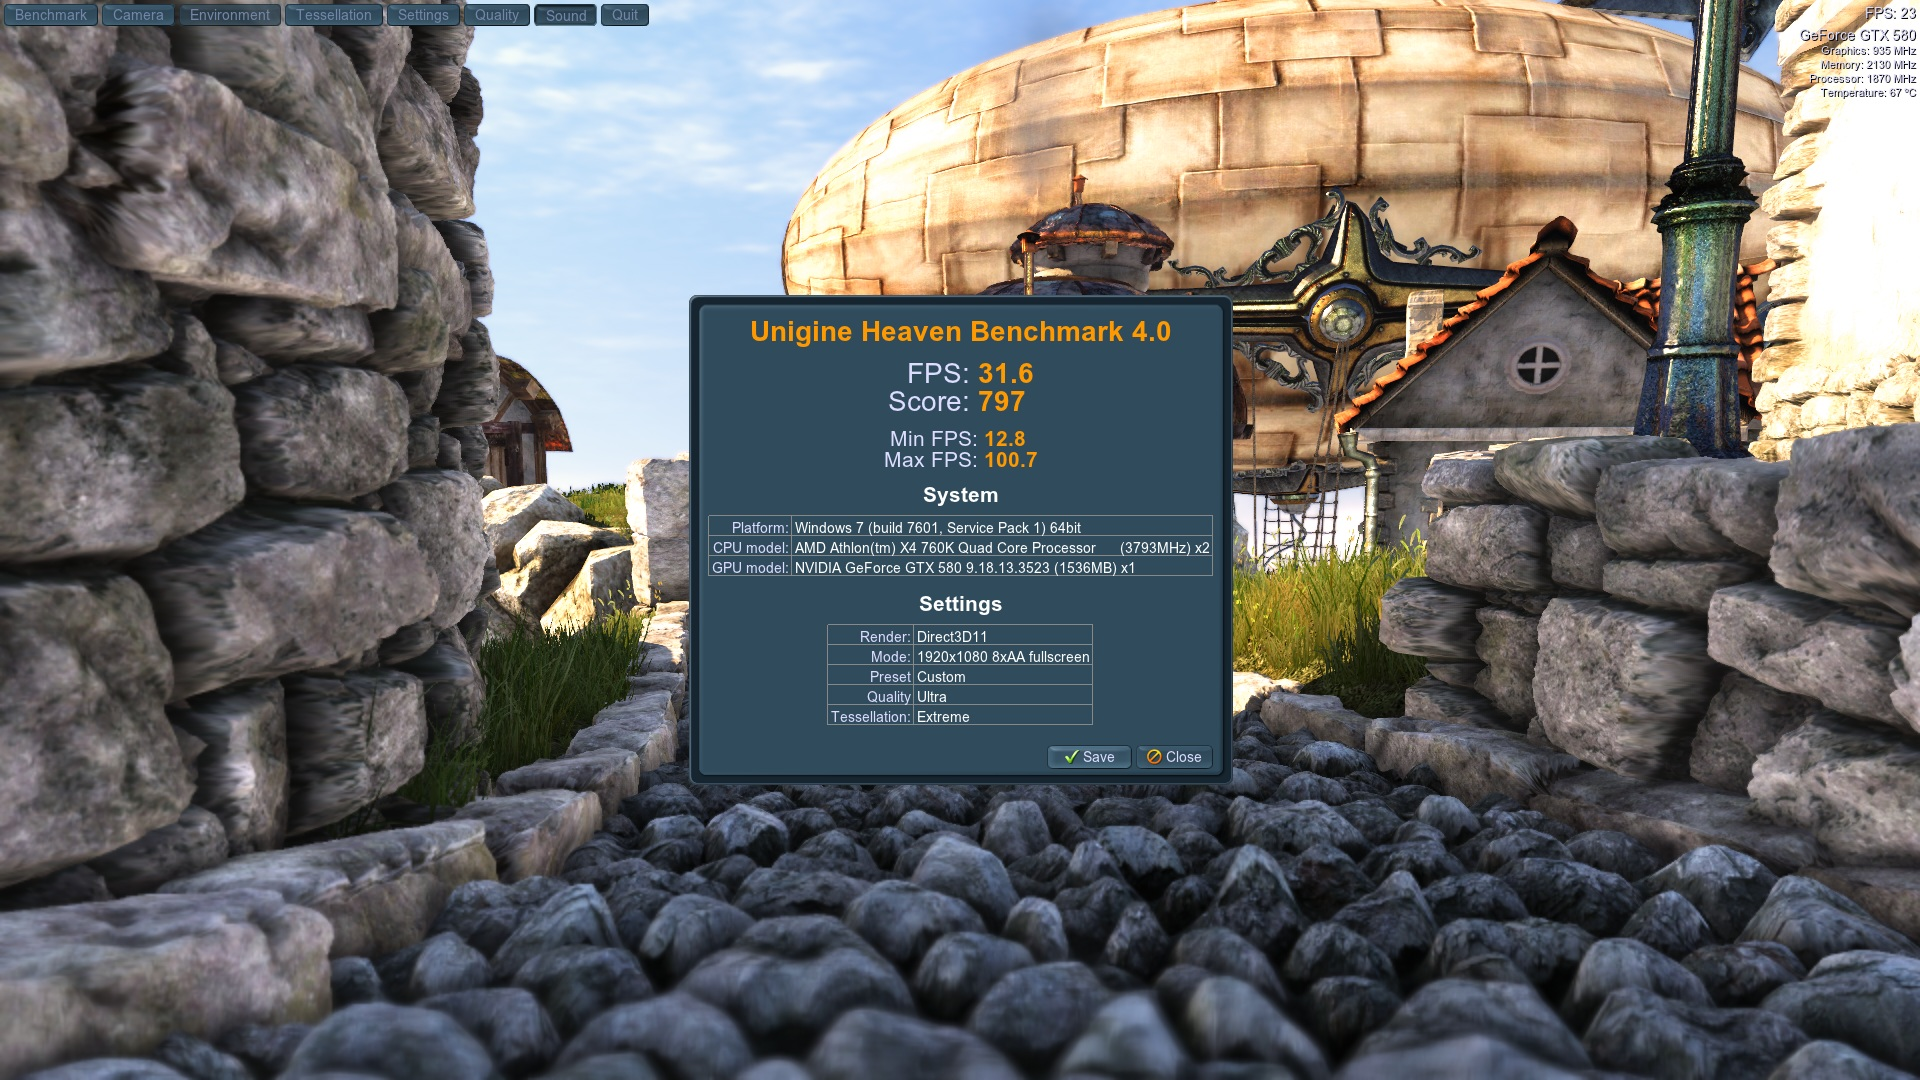 Unigine Heaven 4 0 Benchmark Scores | TechPowerUp Forums